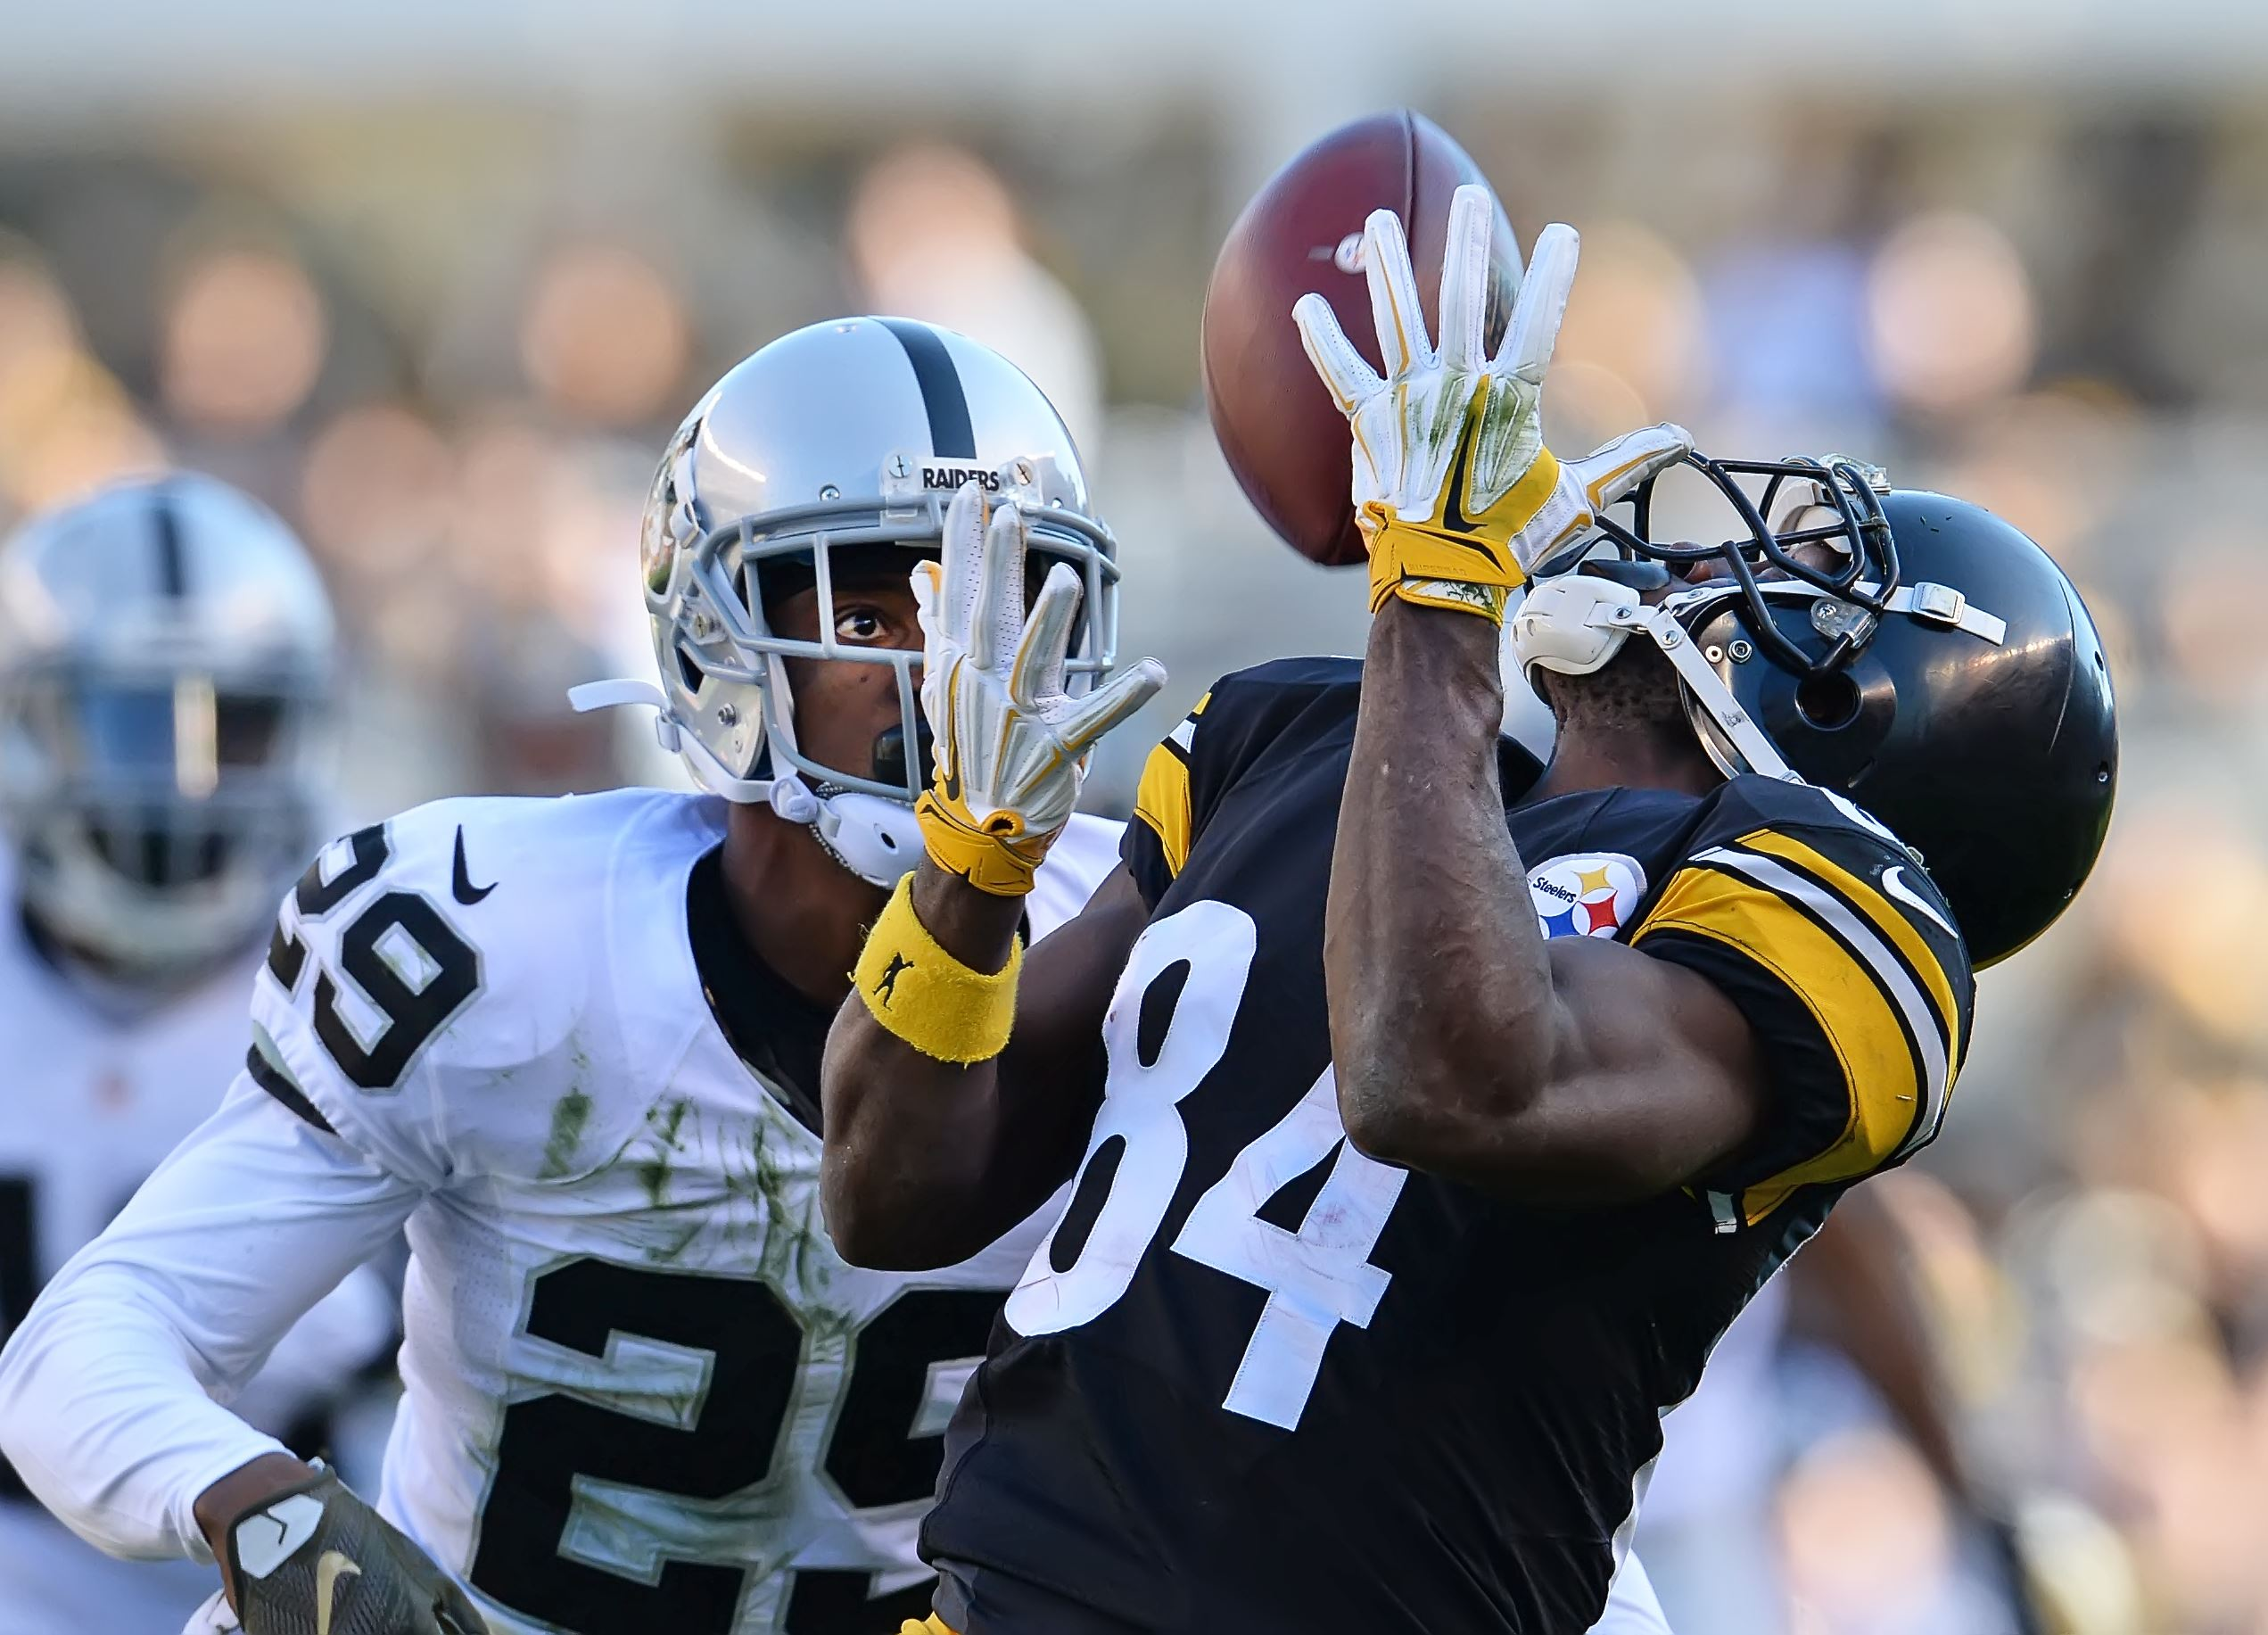 Steelers vs. Raiders 2015: Just like the good ol' days